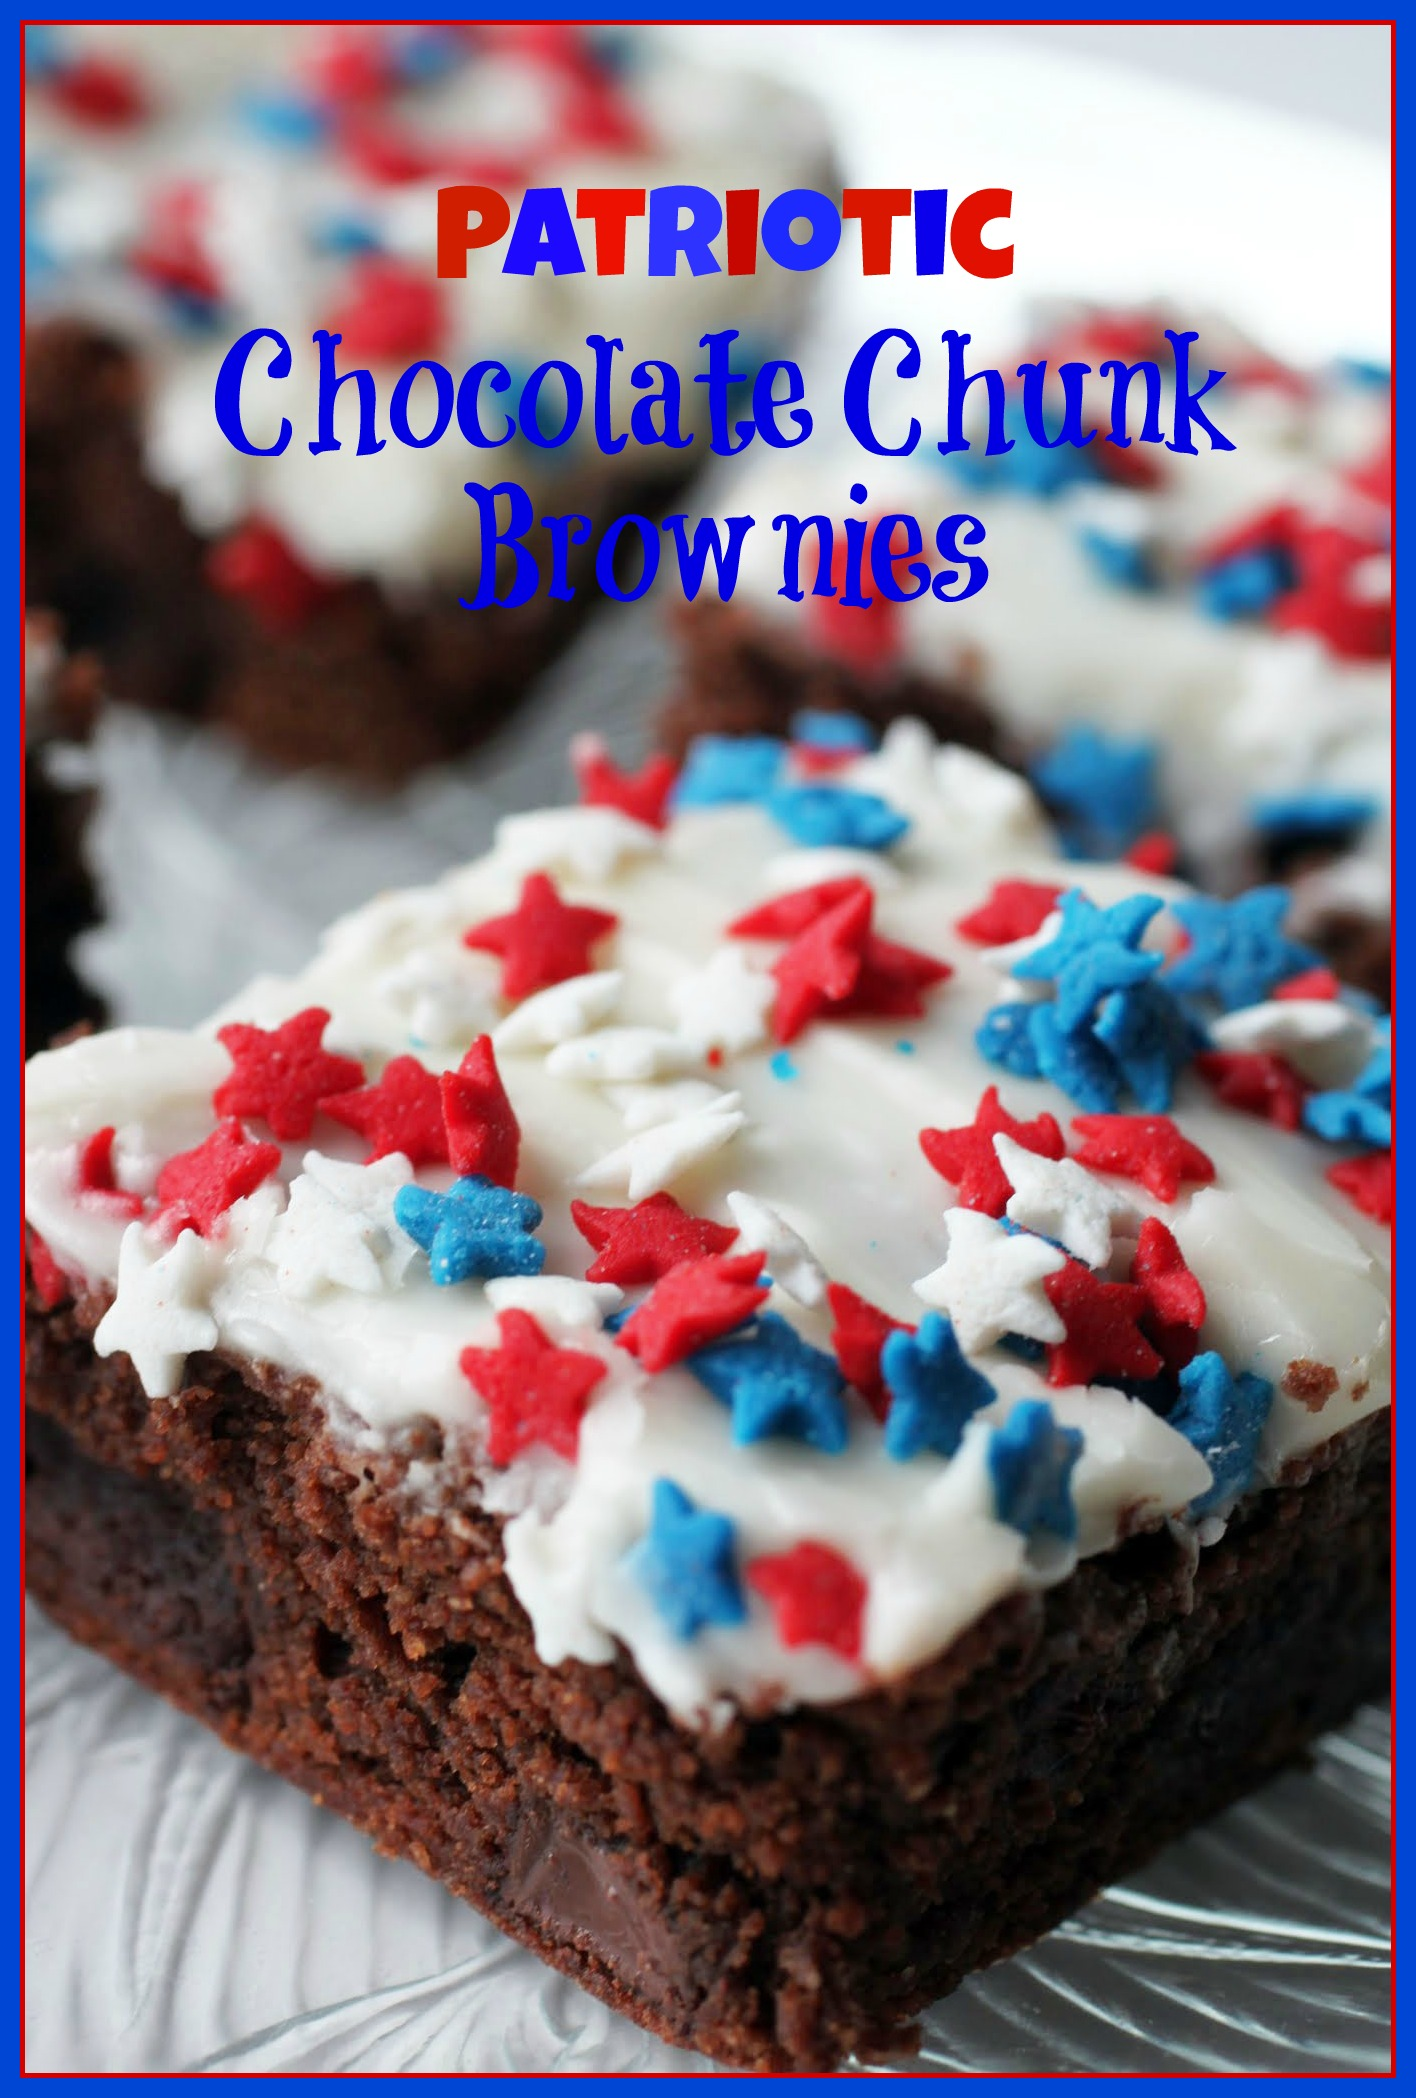 Patriotic Chocolate Chunk Brownies